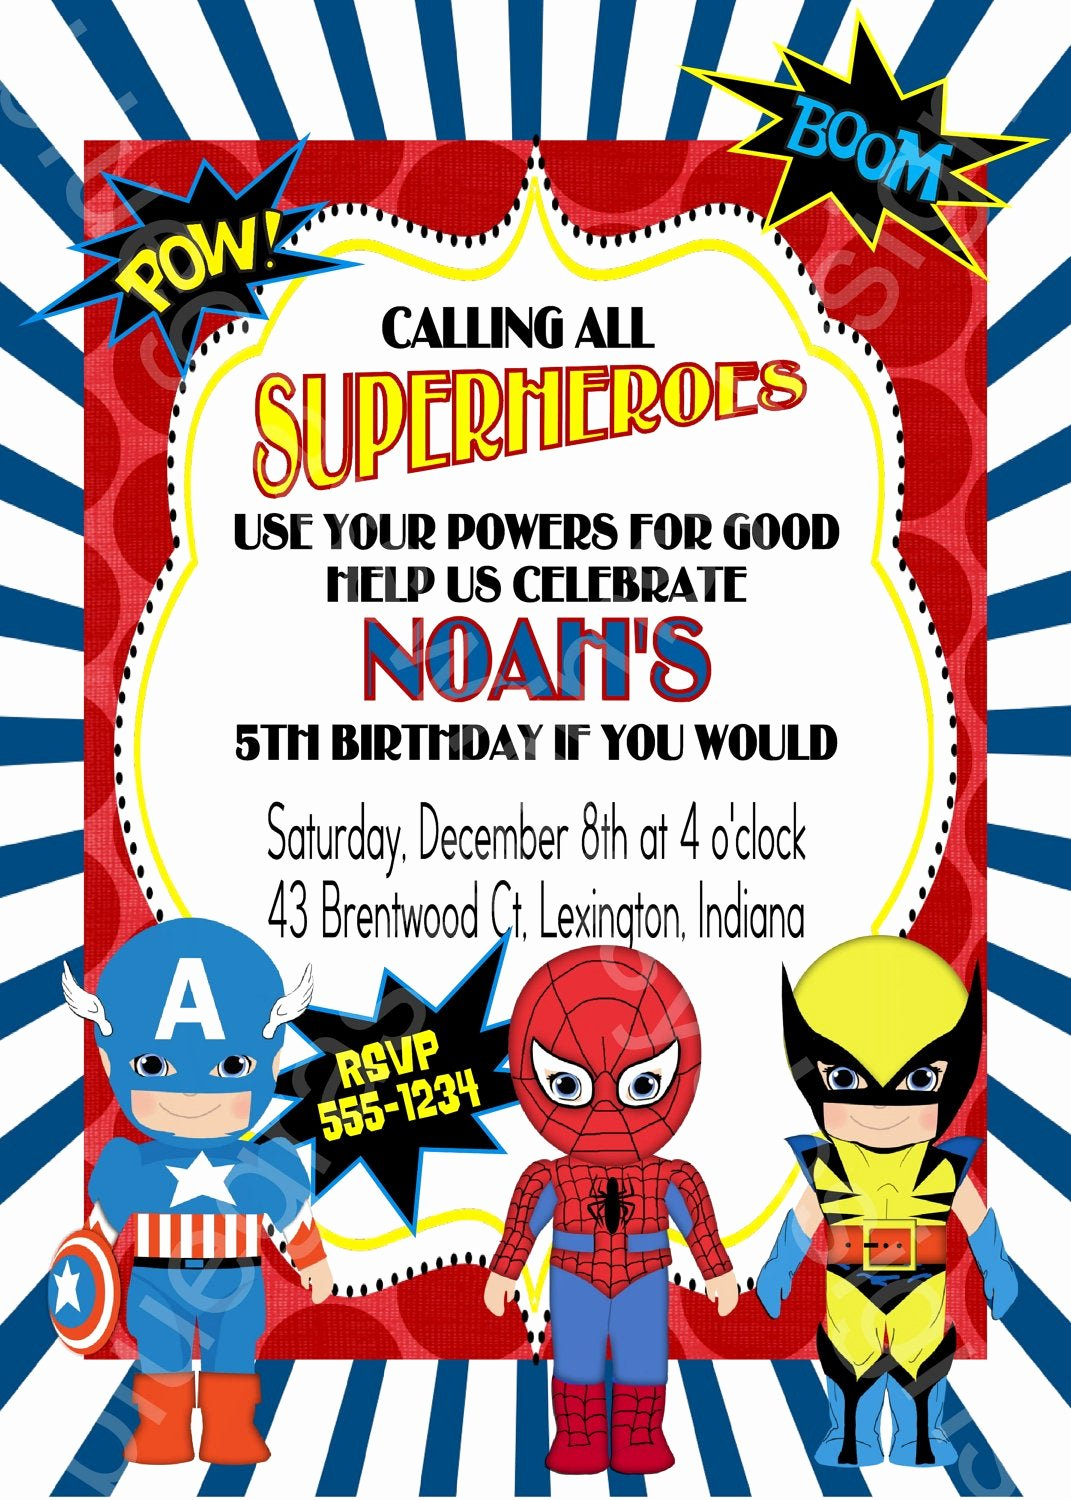 Free Superhero Invitation Templates Lovely Calling All Superheroes Birthday Party Invitation Boy or